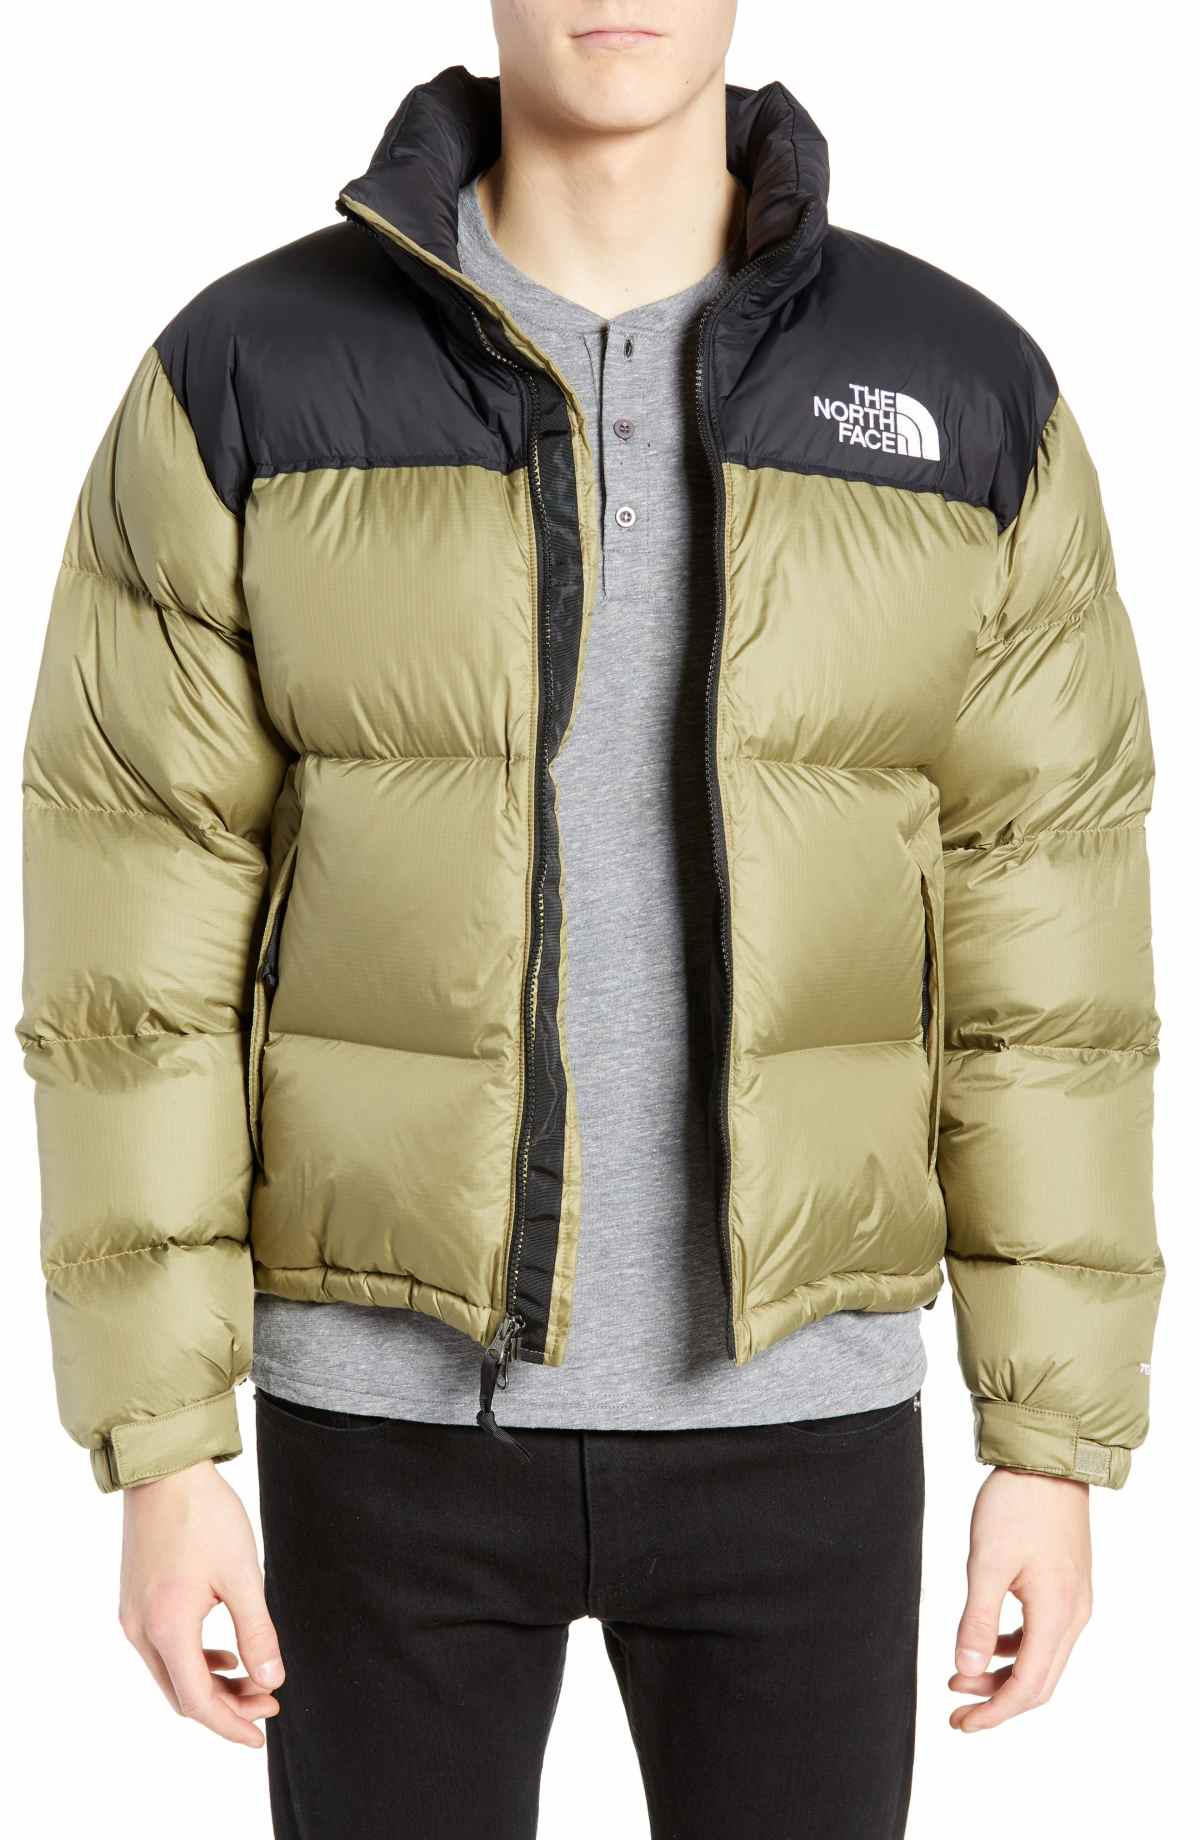 Nuptse 1996 Packable Quilted Down Jacket by The North Face, available on nordstrom.com for $249 Kendall Jenner Outerwear Exact Product